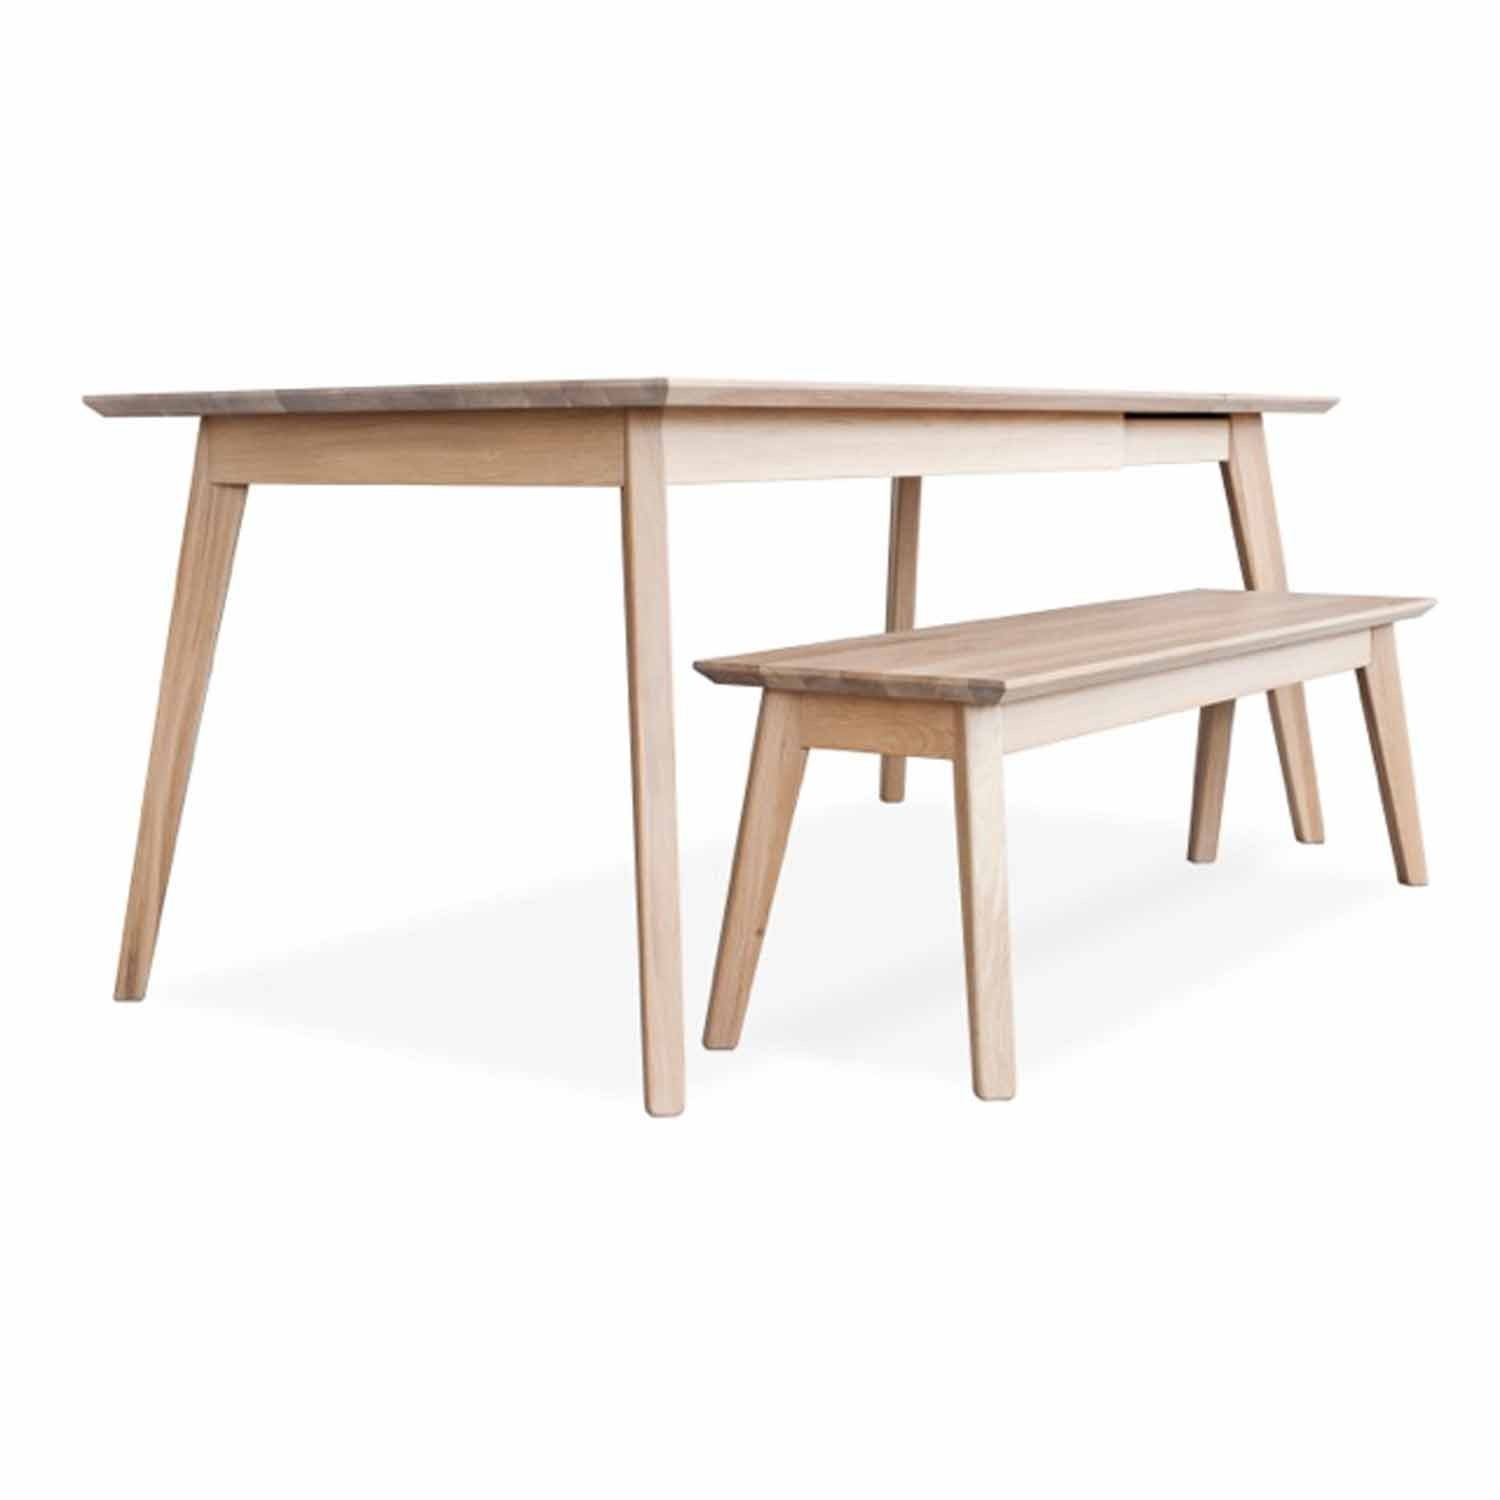 Bianco ii solid wood extendable dining table adventures in furniture Best wood for dining table